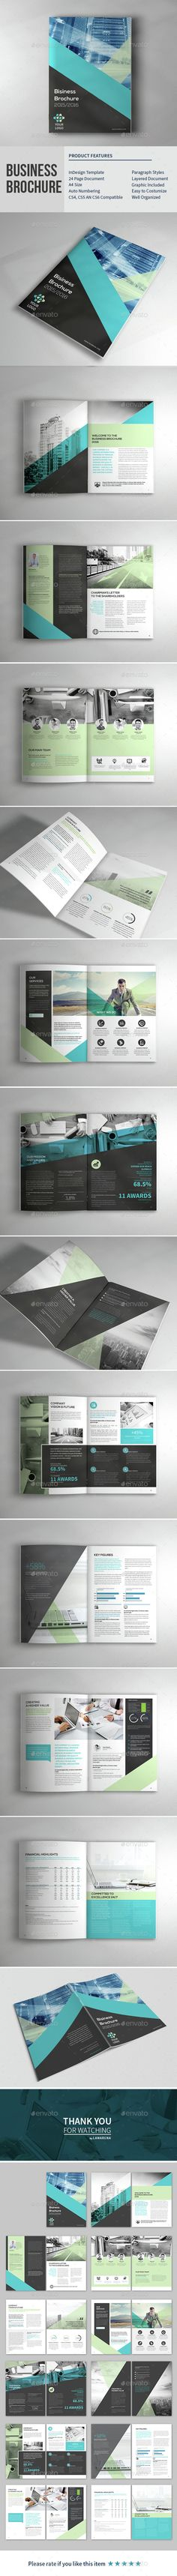 Business Corporate Brochure Template InDesign INDD. Download here: http://graphicriver.net/item/business-corporate-brochure/15241933?ref=ksioks                                                                                                                                                                                 More